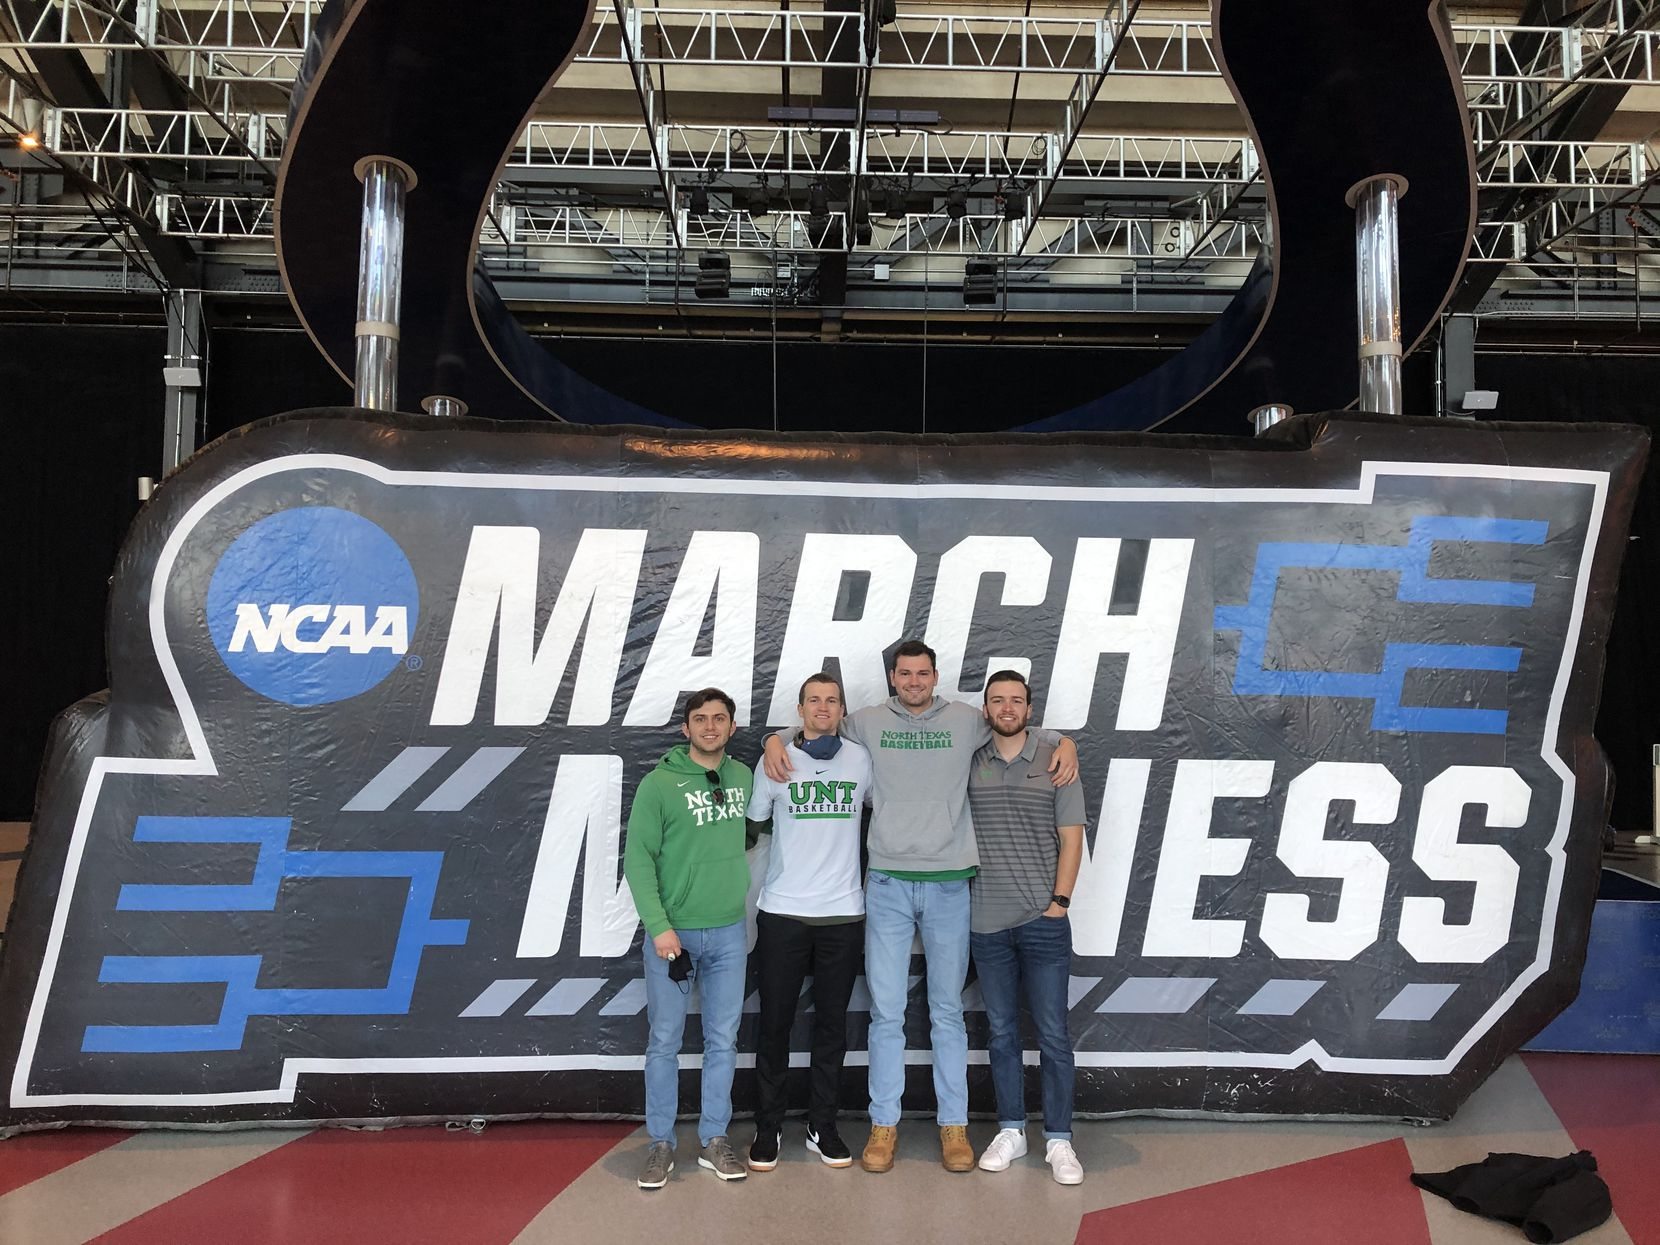 DJ Draper (middle left) stands alongside his friends from North Texas at Lucas Oil Stadium in Indianapolis.